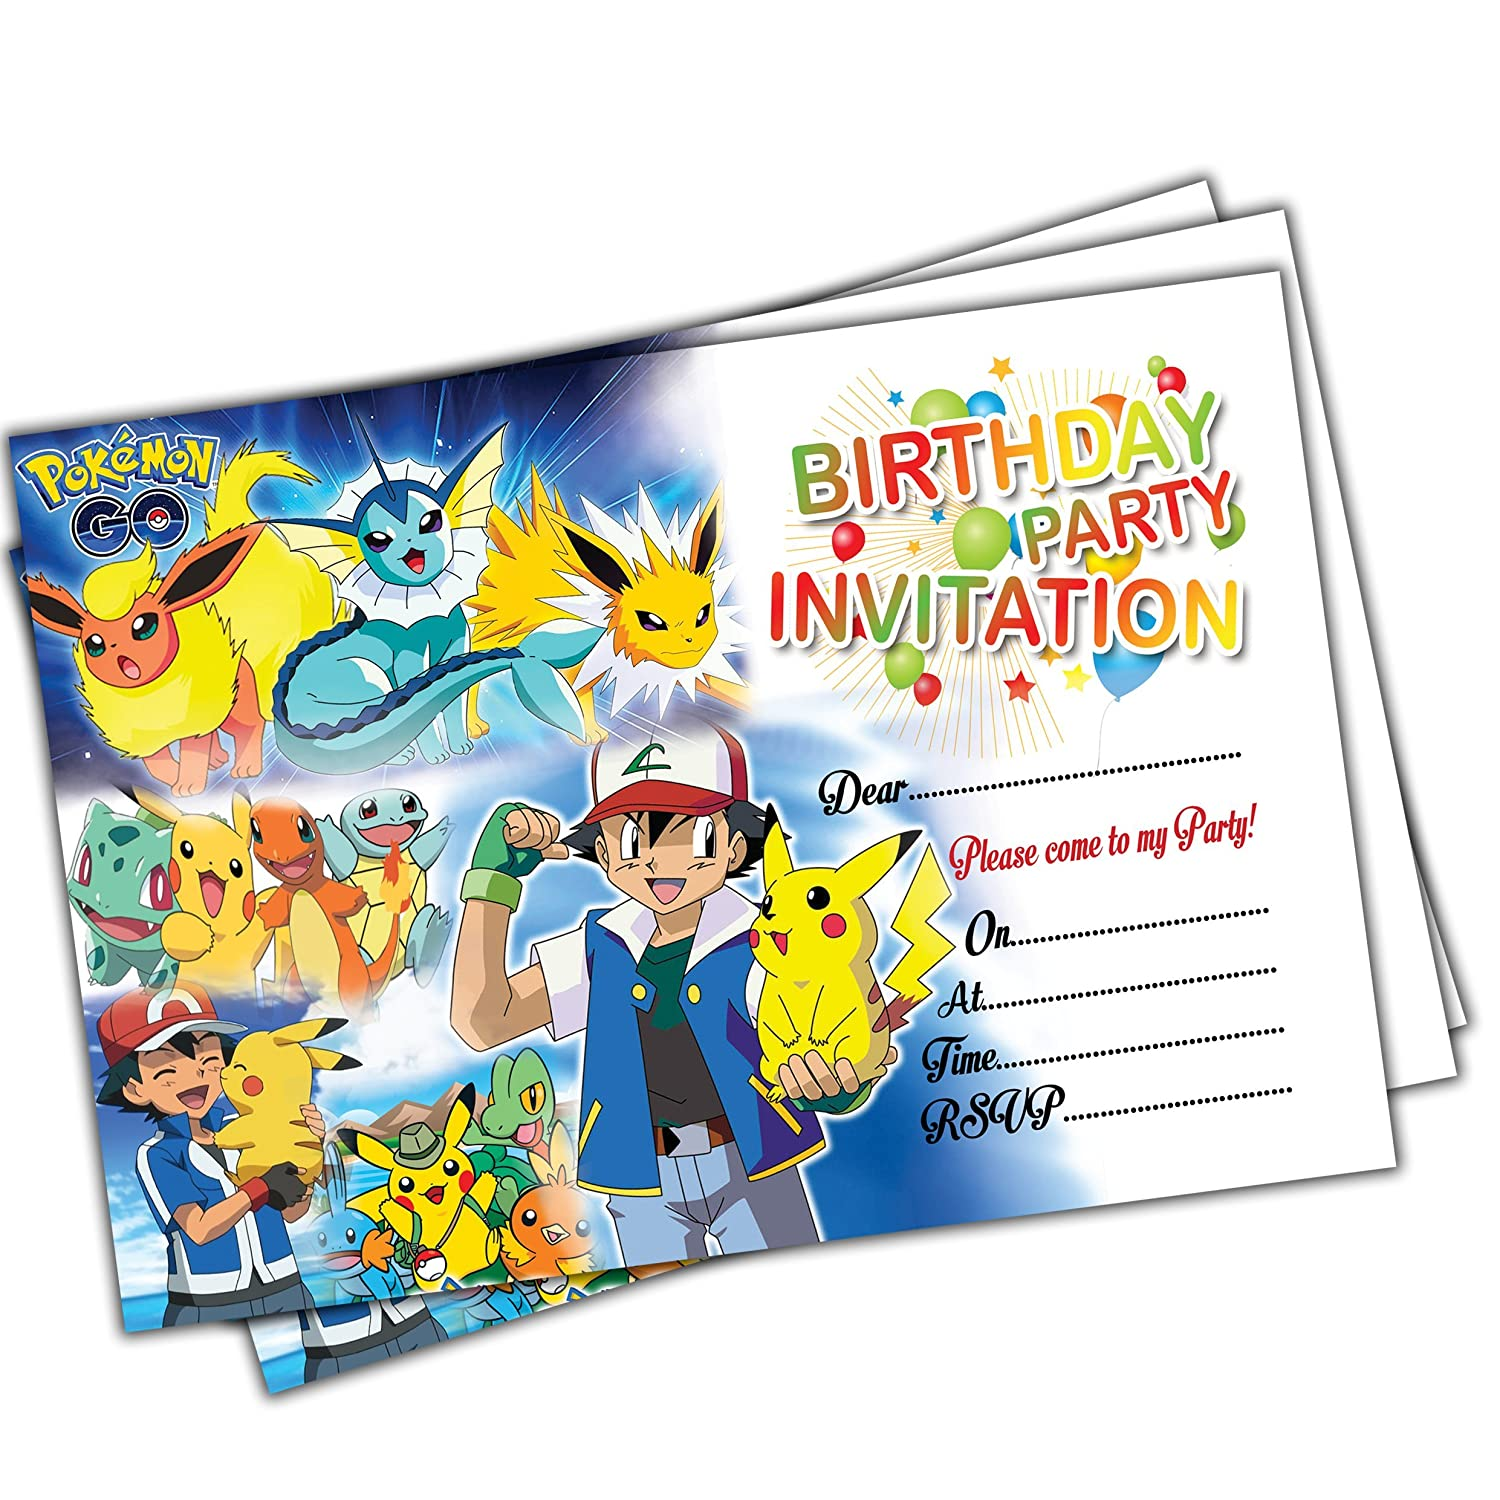 20 x Pokemon Go Kids Birthday Party Invitations Invites Cards Quality Girls Boys Eli Belinde